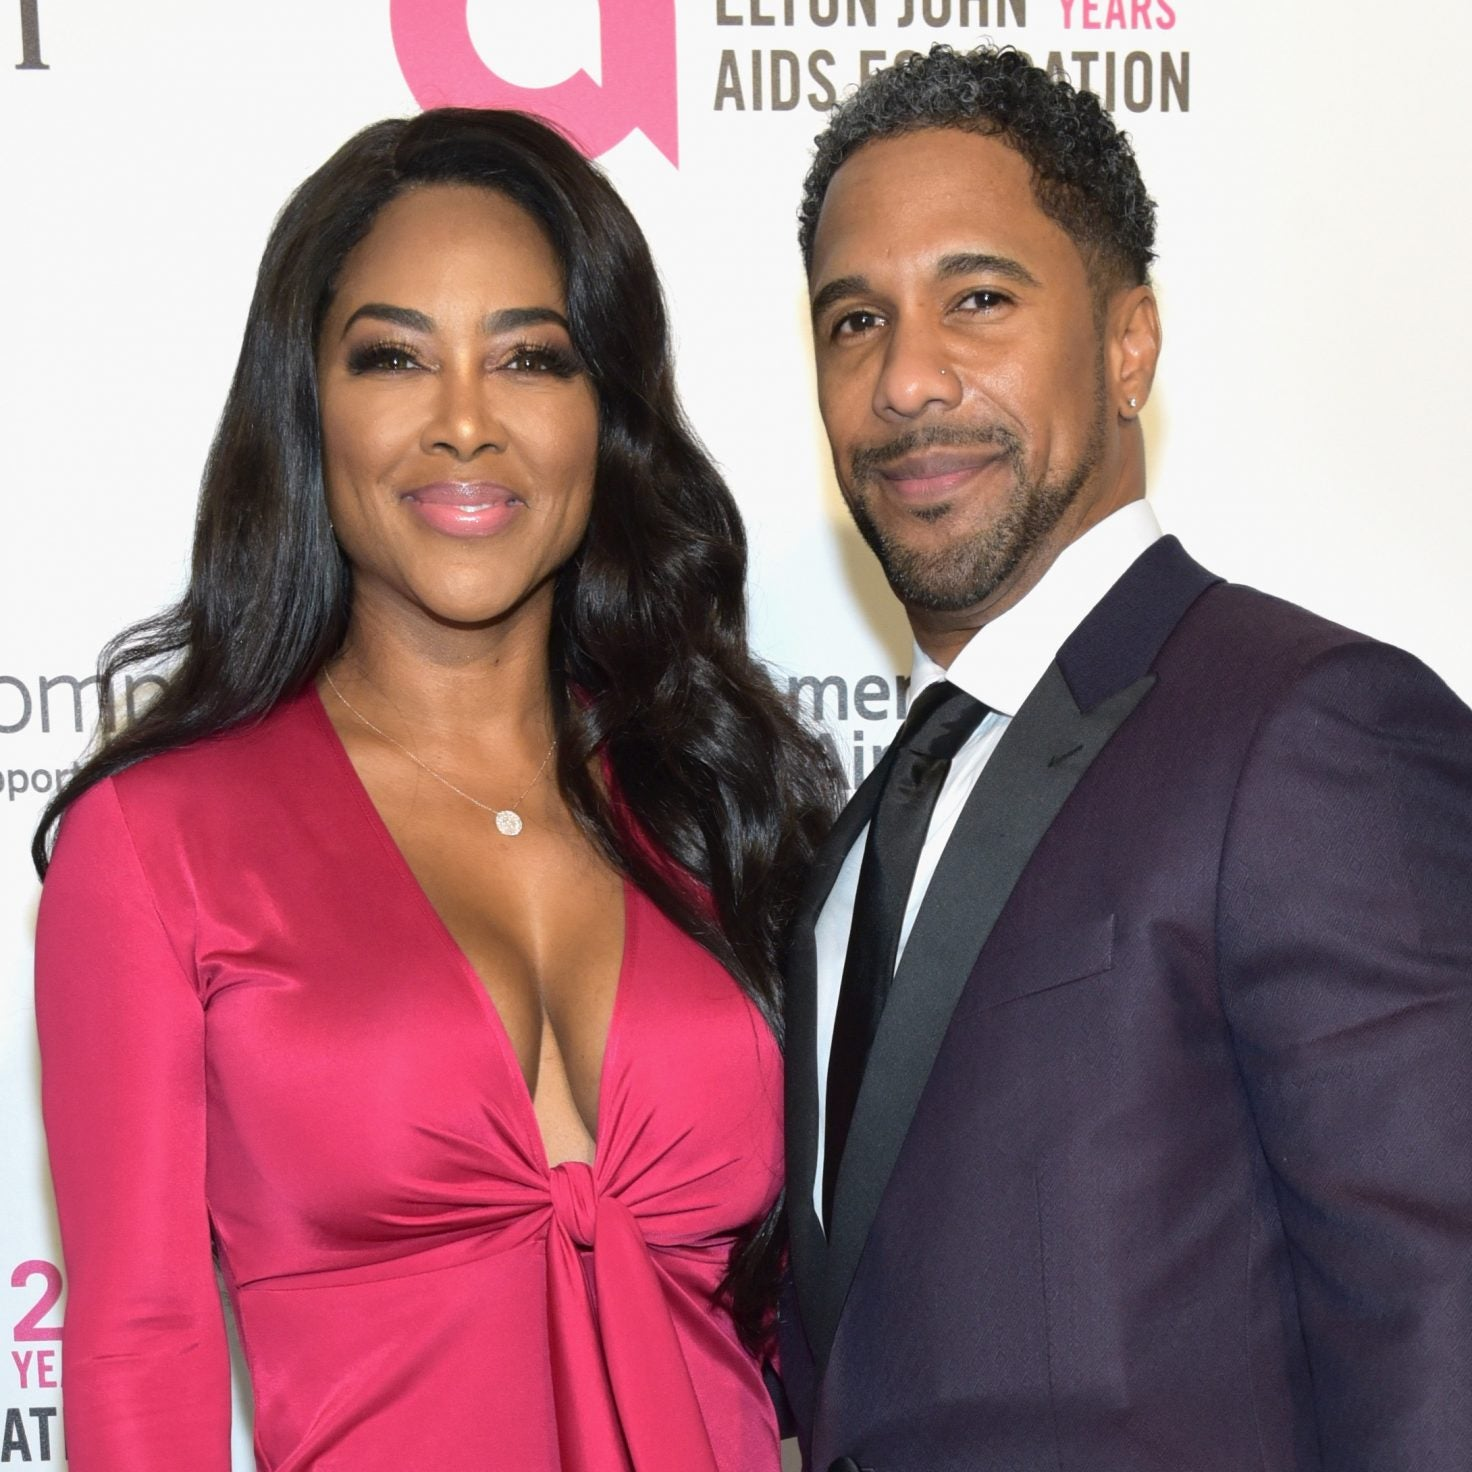 Together Again? Kenya Moore Says Her Relationship With Marc Daly Is Improving